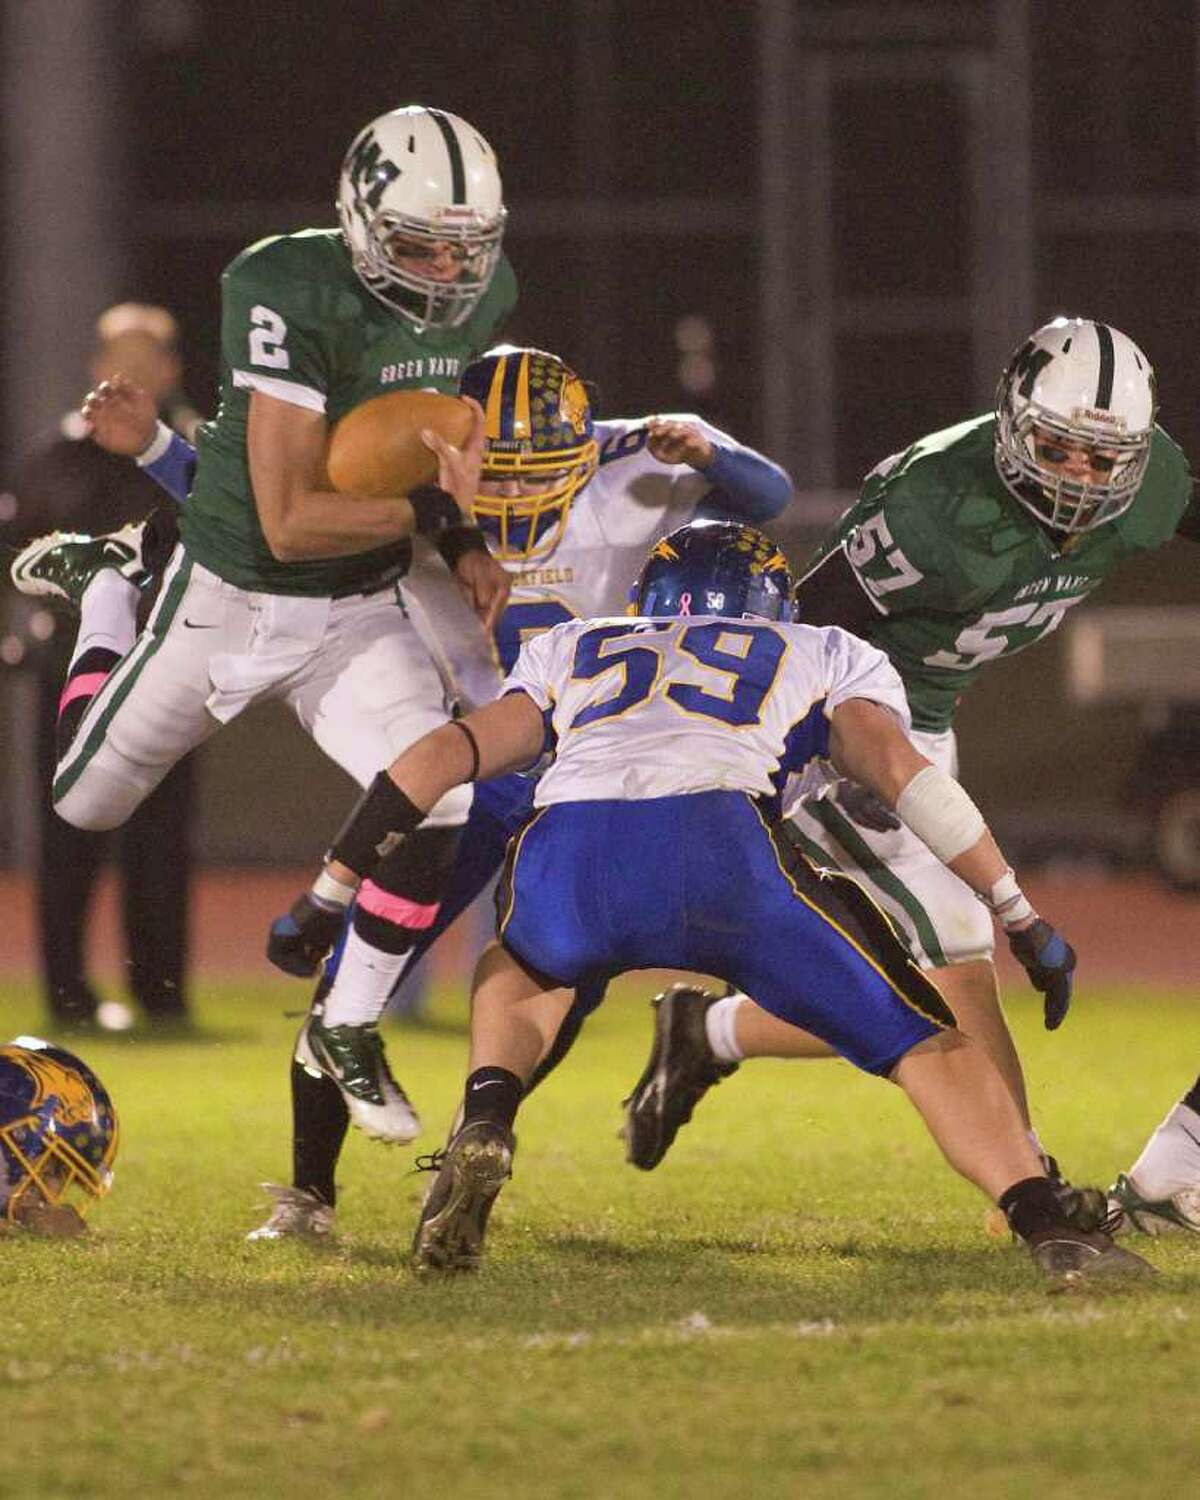 New Milford quarterback Karl Bradshaw (2) goes airborne, but Brookfield's Tyler Heckmann (59) is waiting for him when he comes down Friday night, Oct. 22, 2010, at New Milford High School.